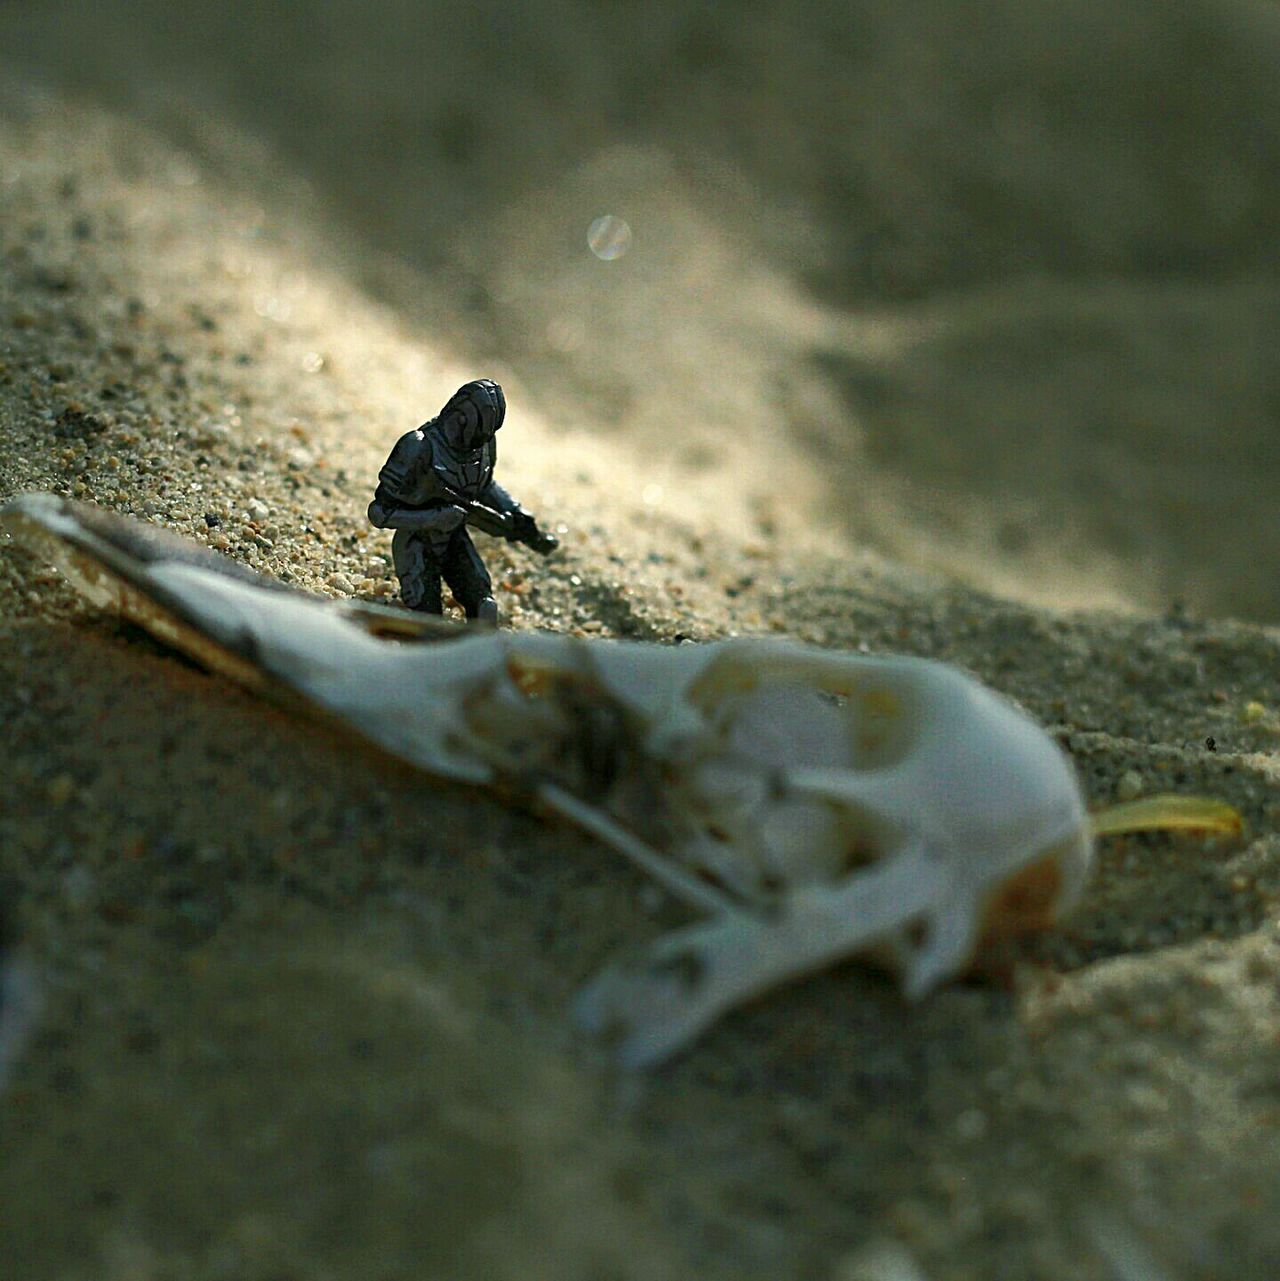 Shipwrecked. TieFighterPilot Starwars Toyphotography Toyartistry Wizardsofthecoast Starwarsminifigures Toyoutsiders